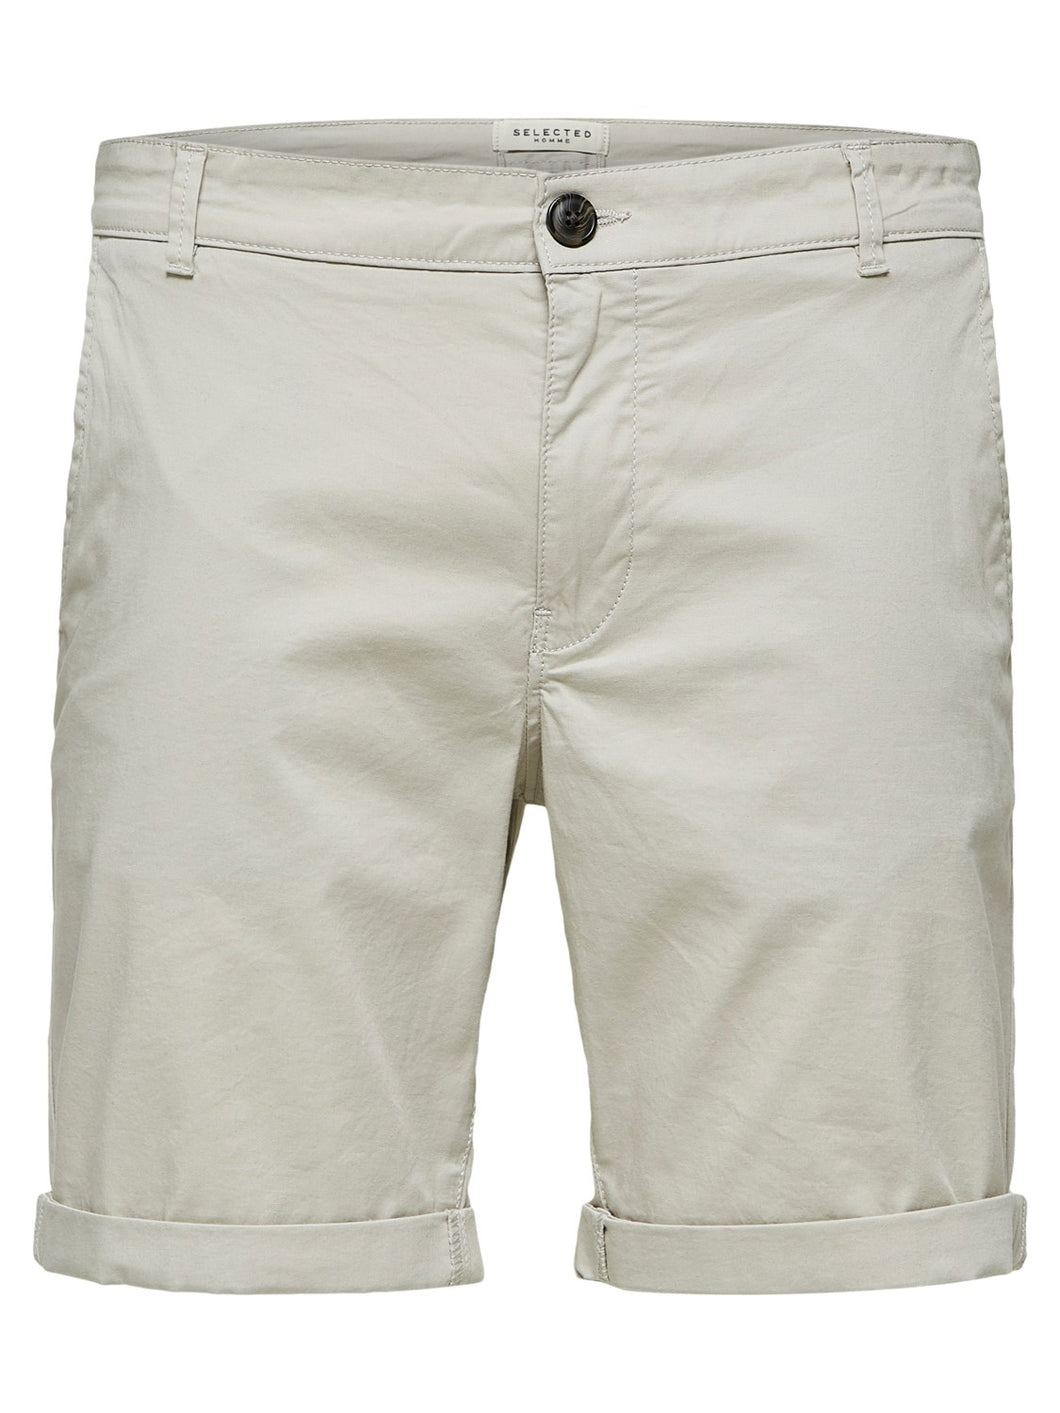 Selected Homme Paris Chino Shorts Moonstruck